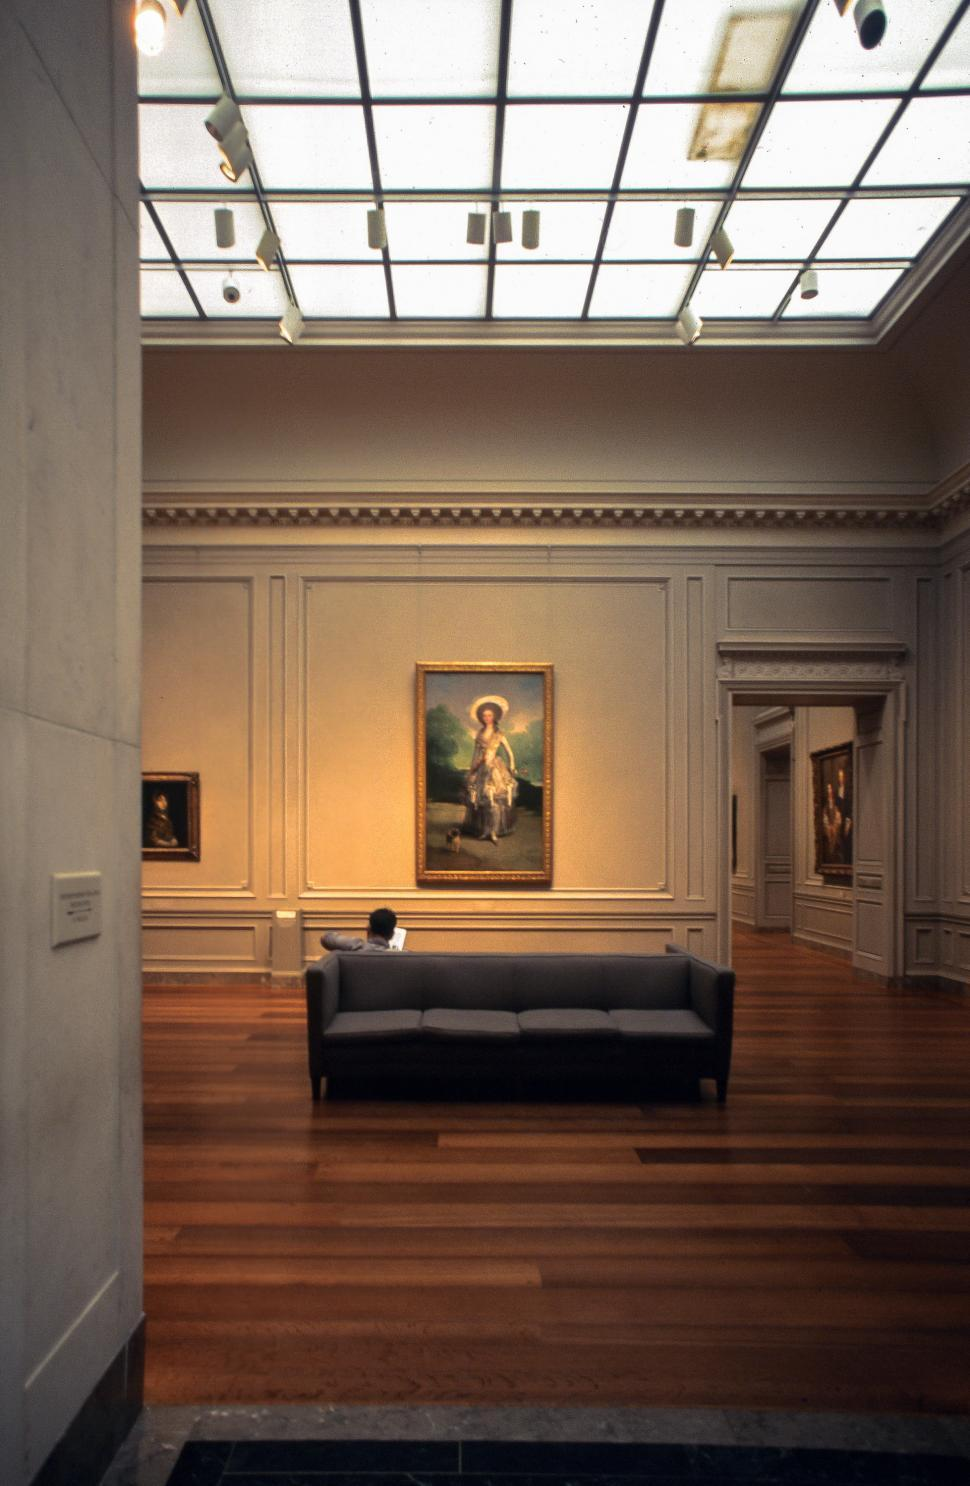 Download Free Stock Photo of National Art gallery